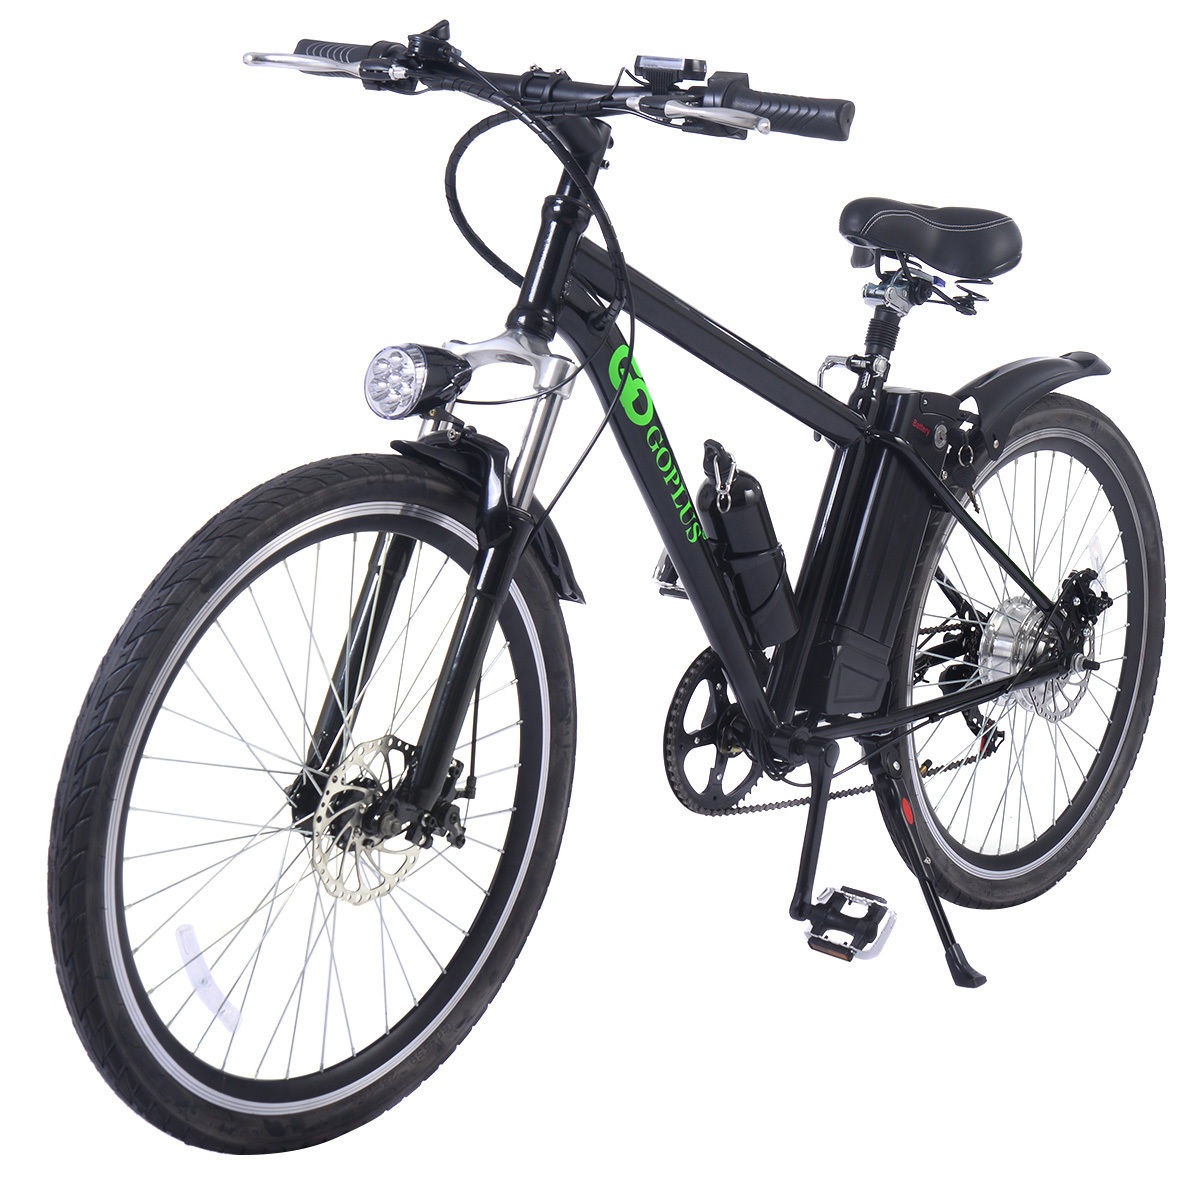 Goplus 26'' 250W 36V Electric Mountain Bicycle Variable Speed Lithium Battery Cup Holder